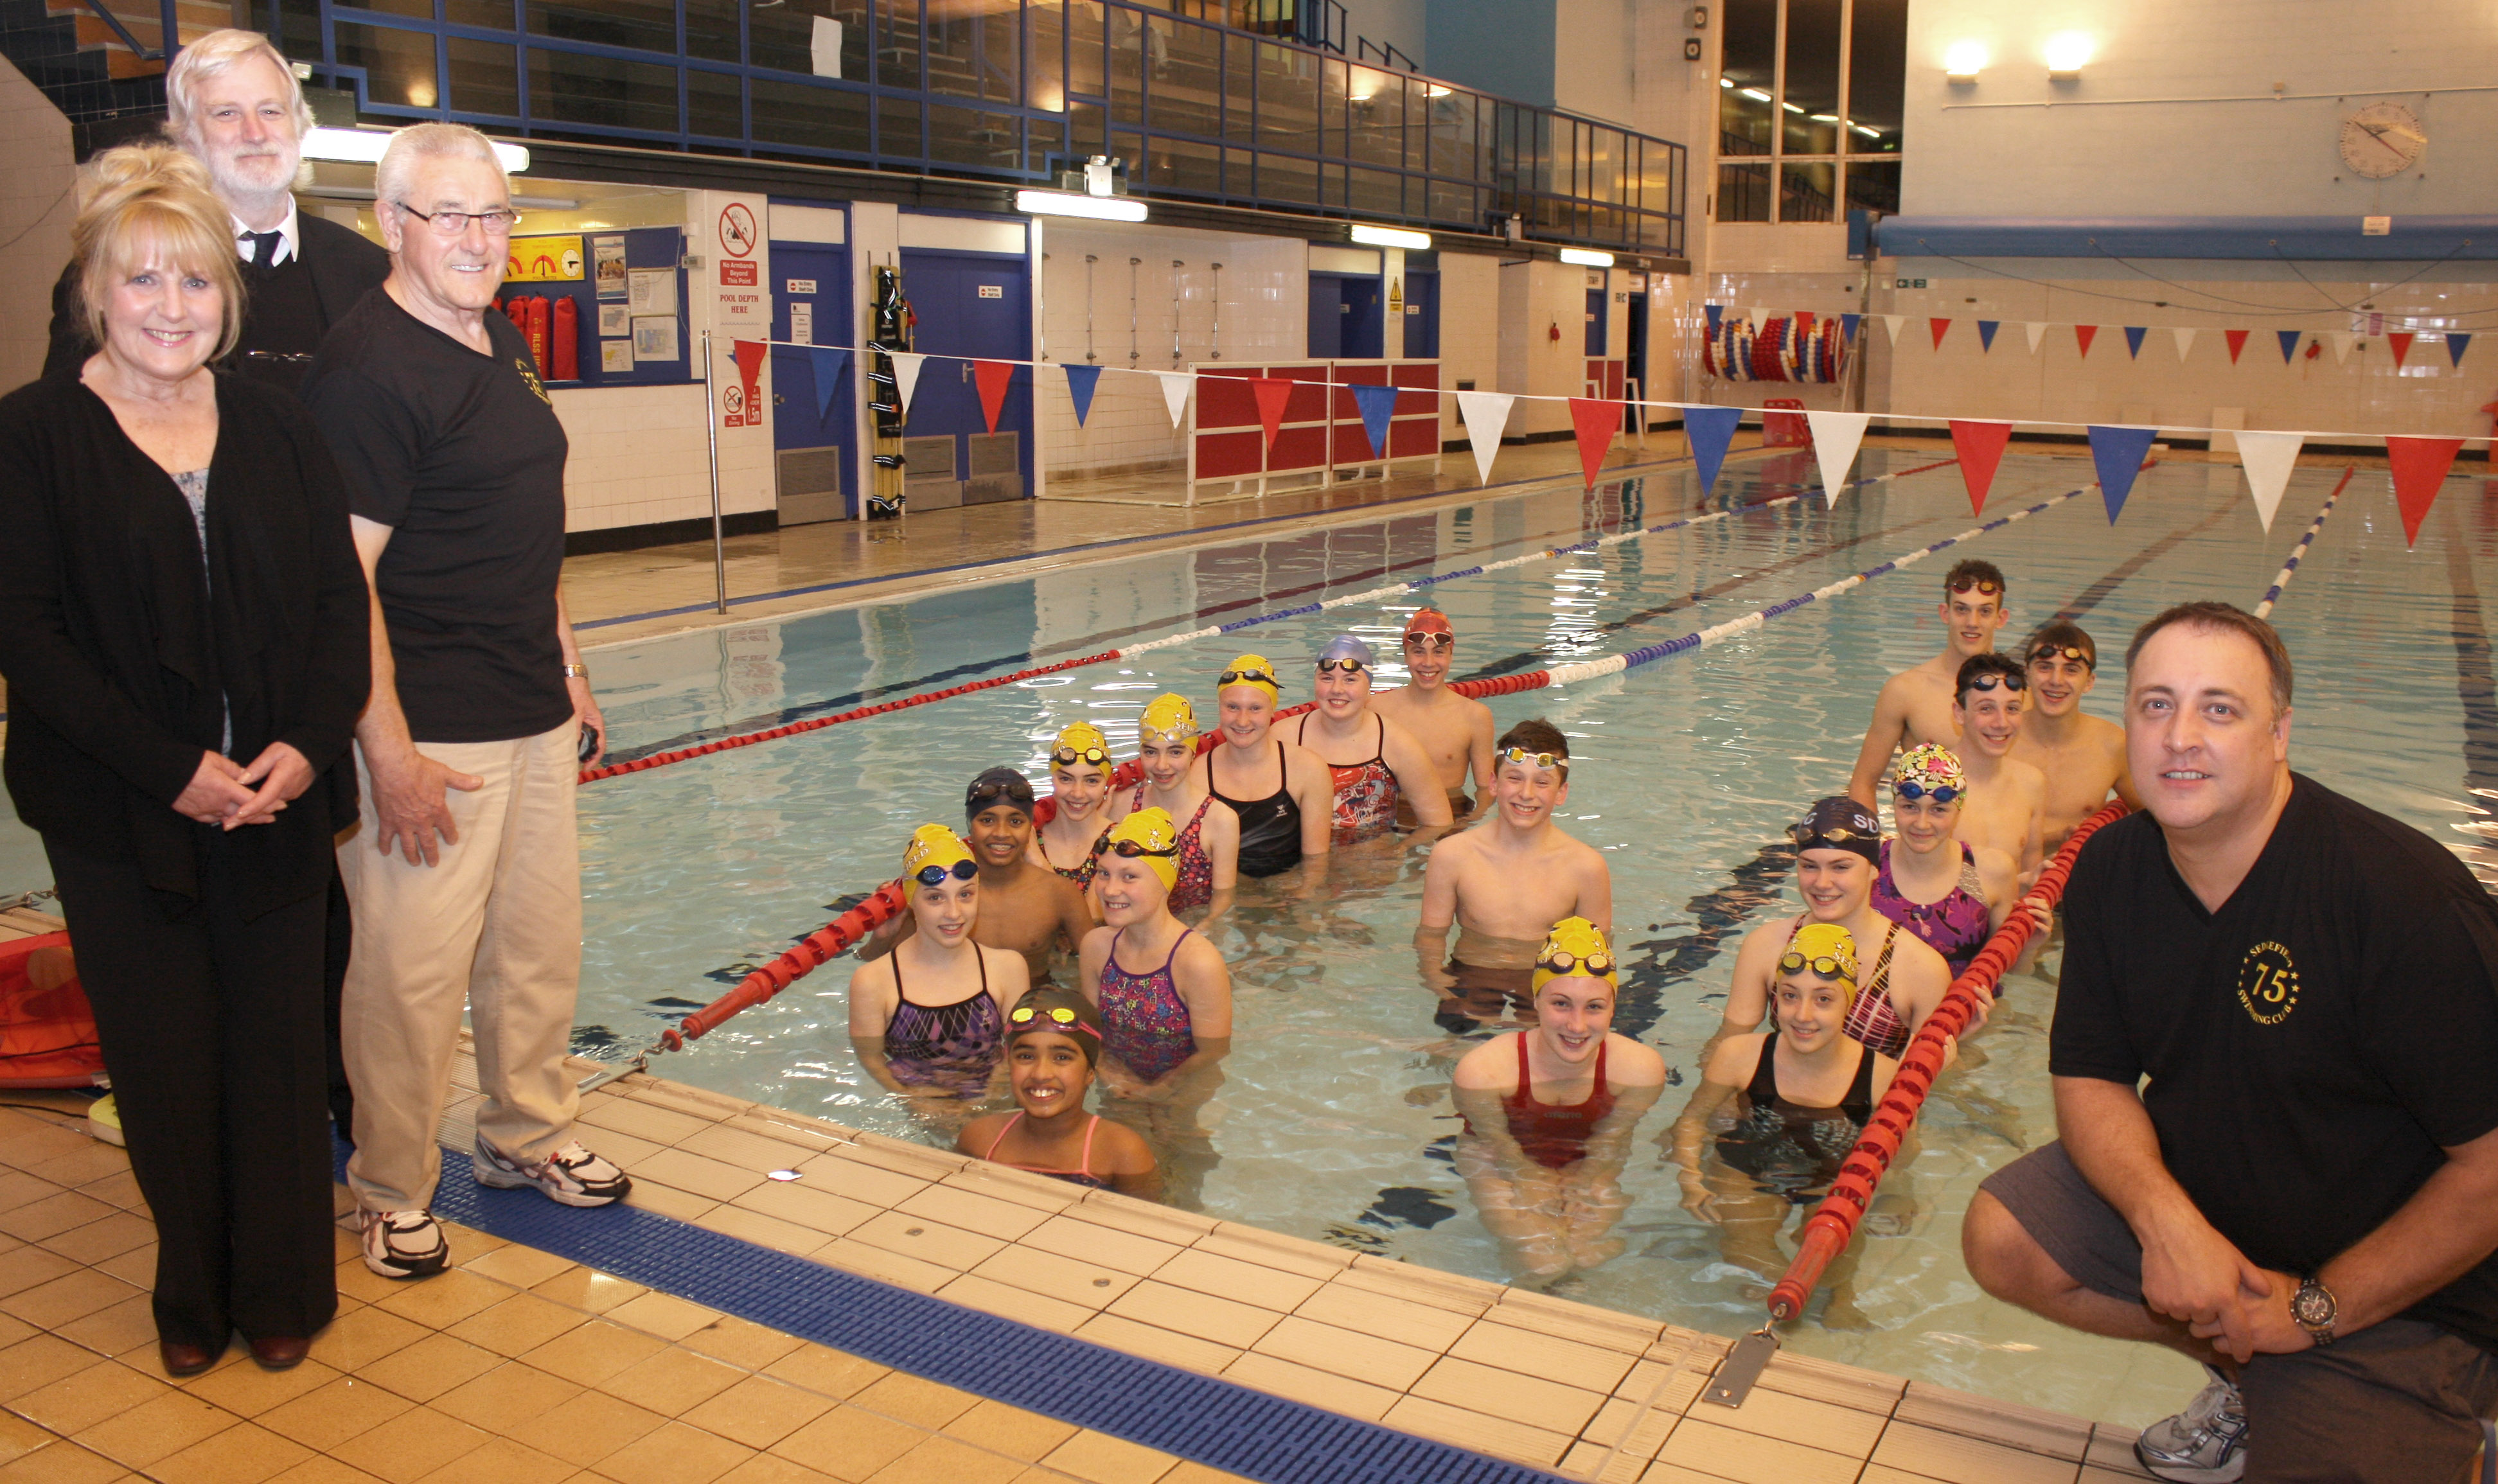 New Lane Ropes Helps Aycliffe Swimmers